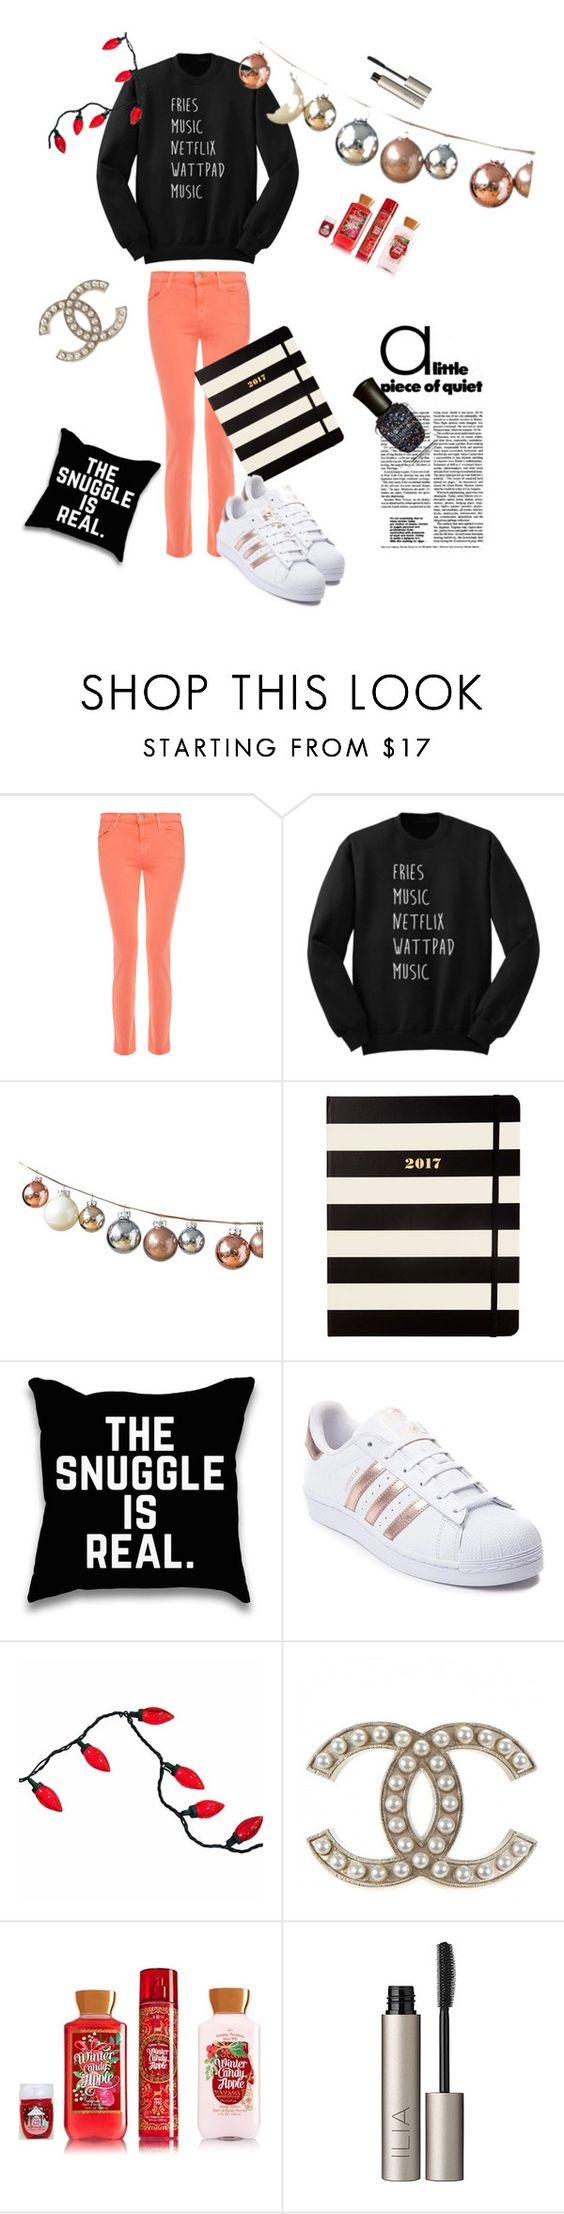 """Untitled #18"" by xxxx000 ❤ liked on Polyvore featuring J Brand, Kate Spade, adidas, Ilia and Deborah Lippmann"